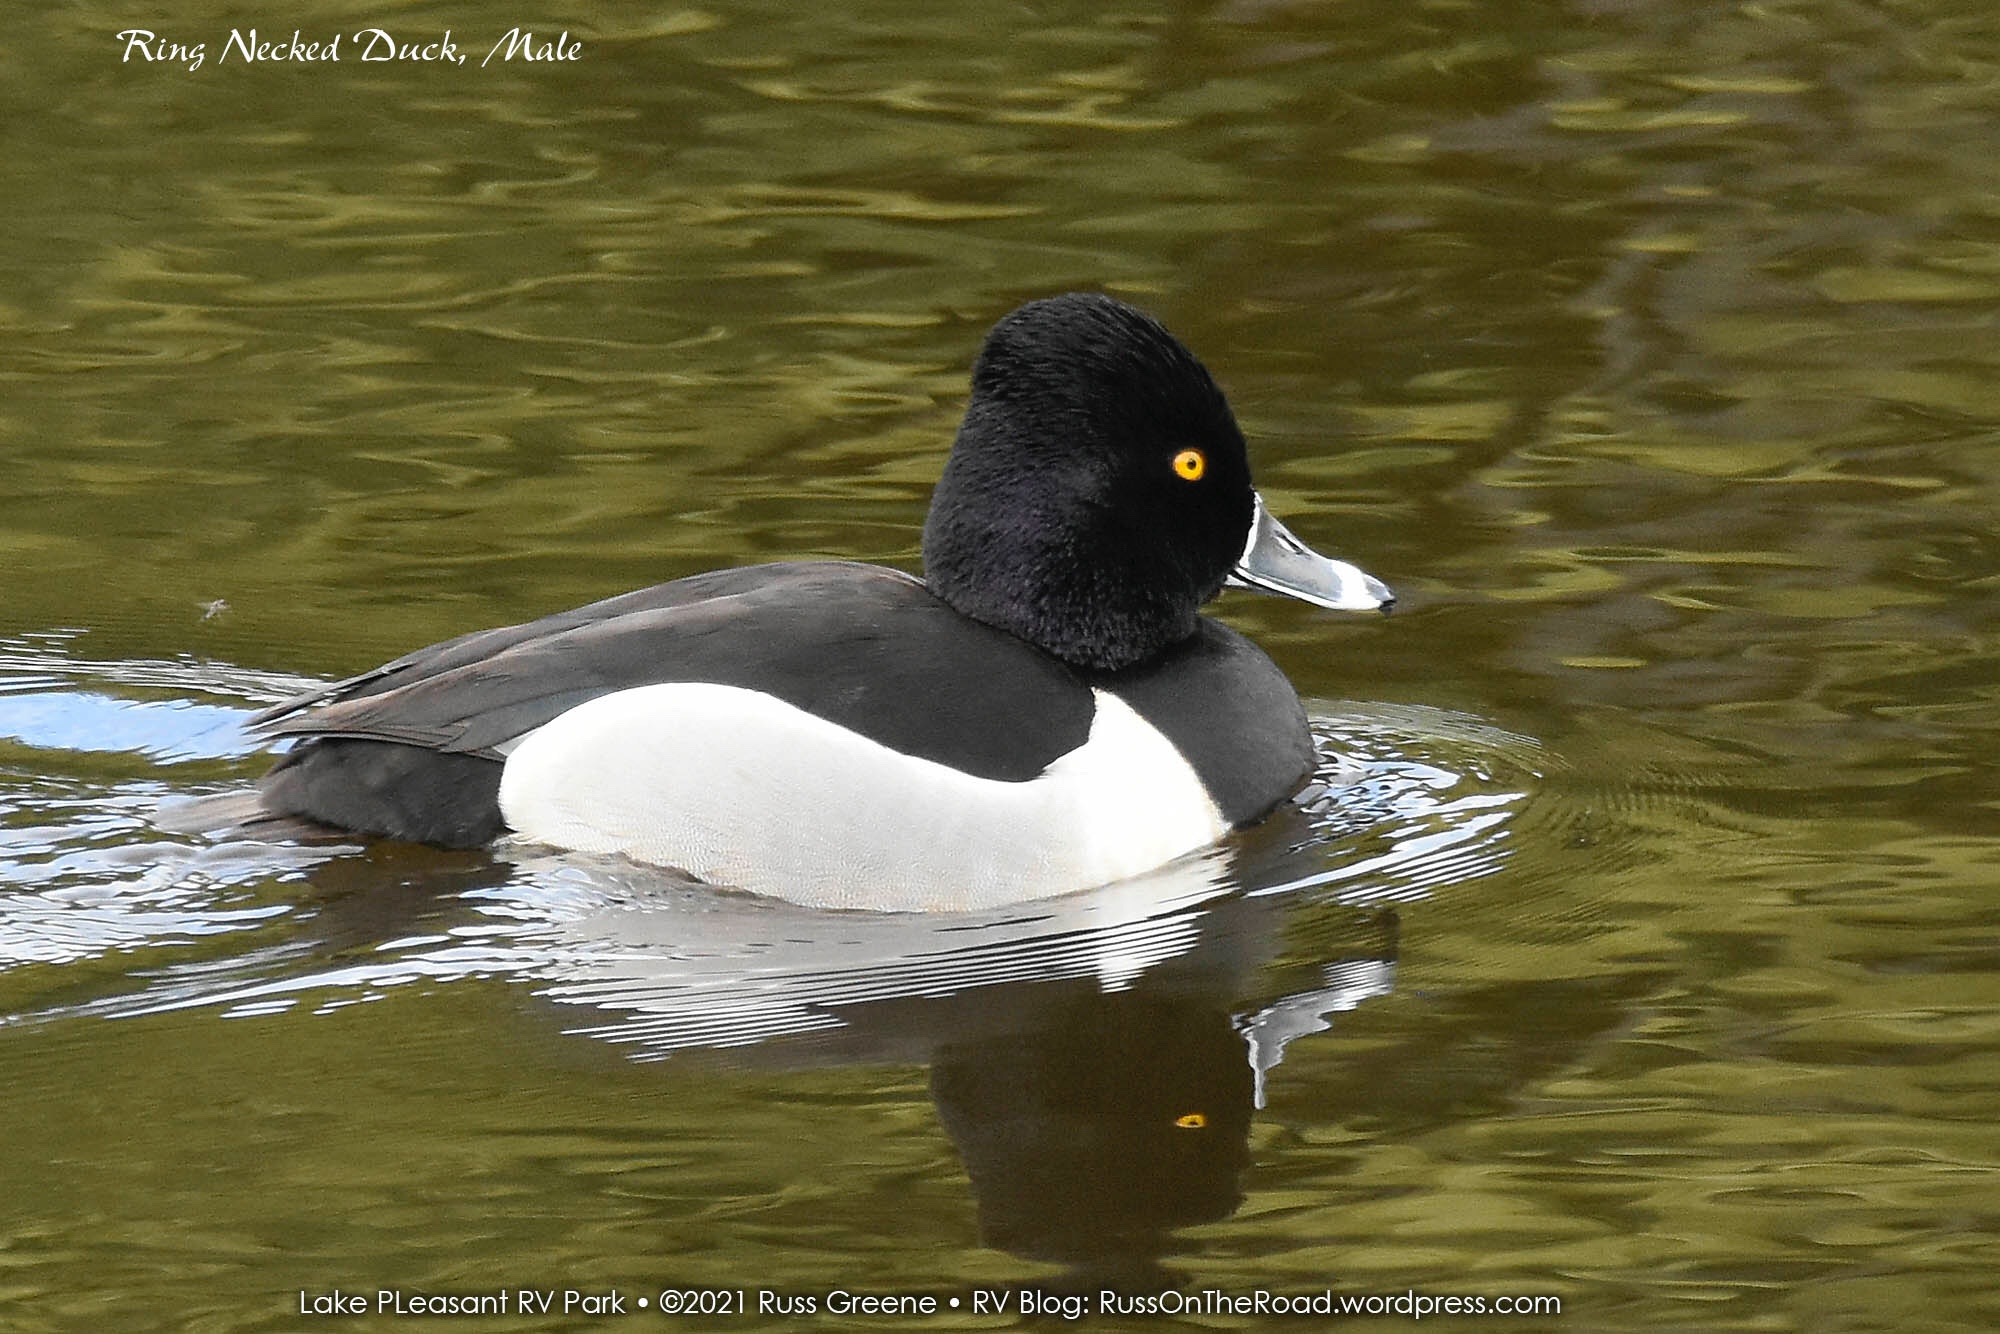 Male ring-necked duck.